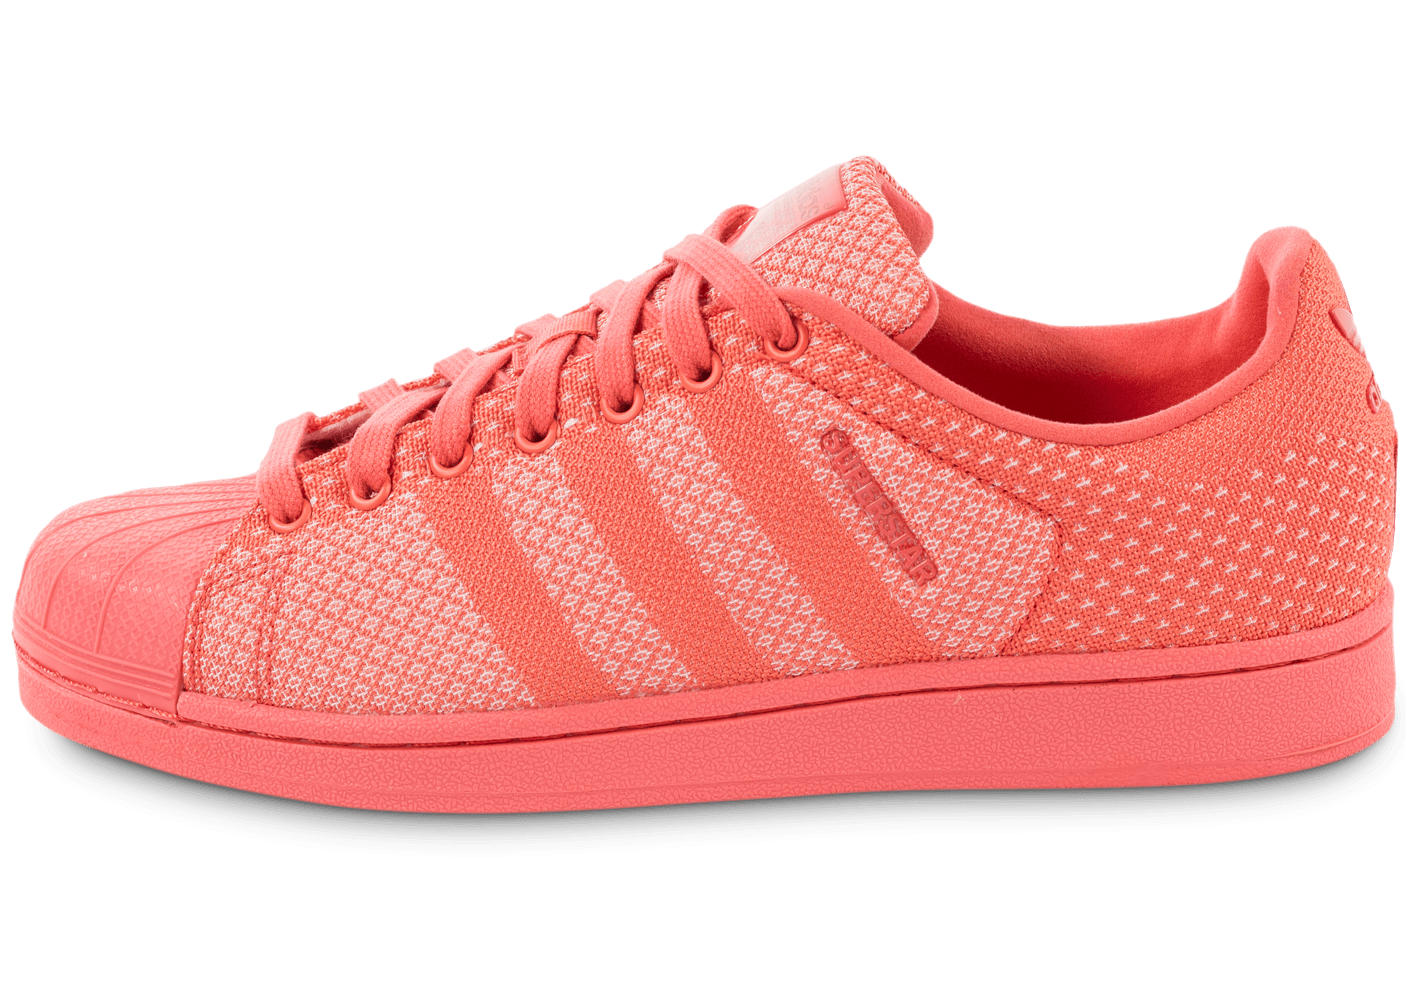 adidas superstar homme taille 41